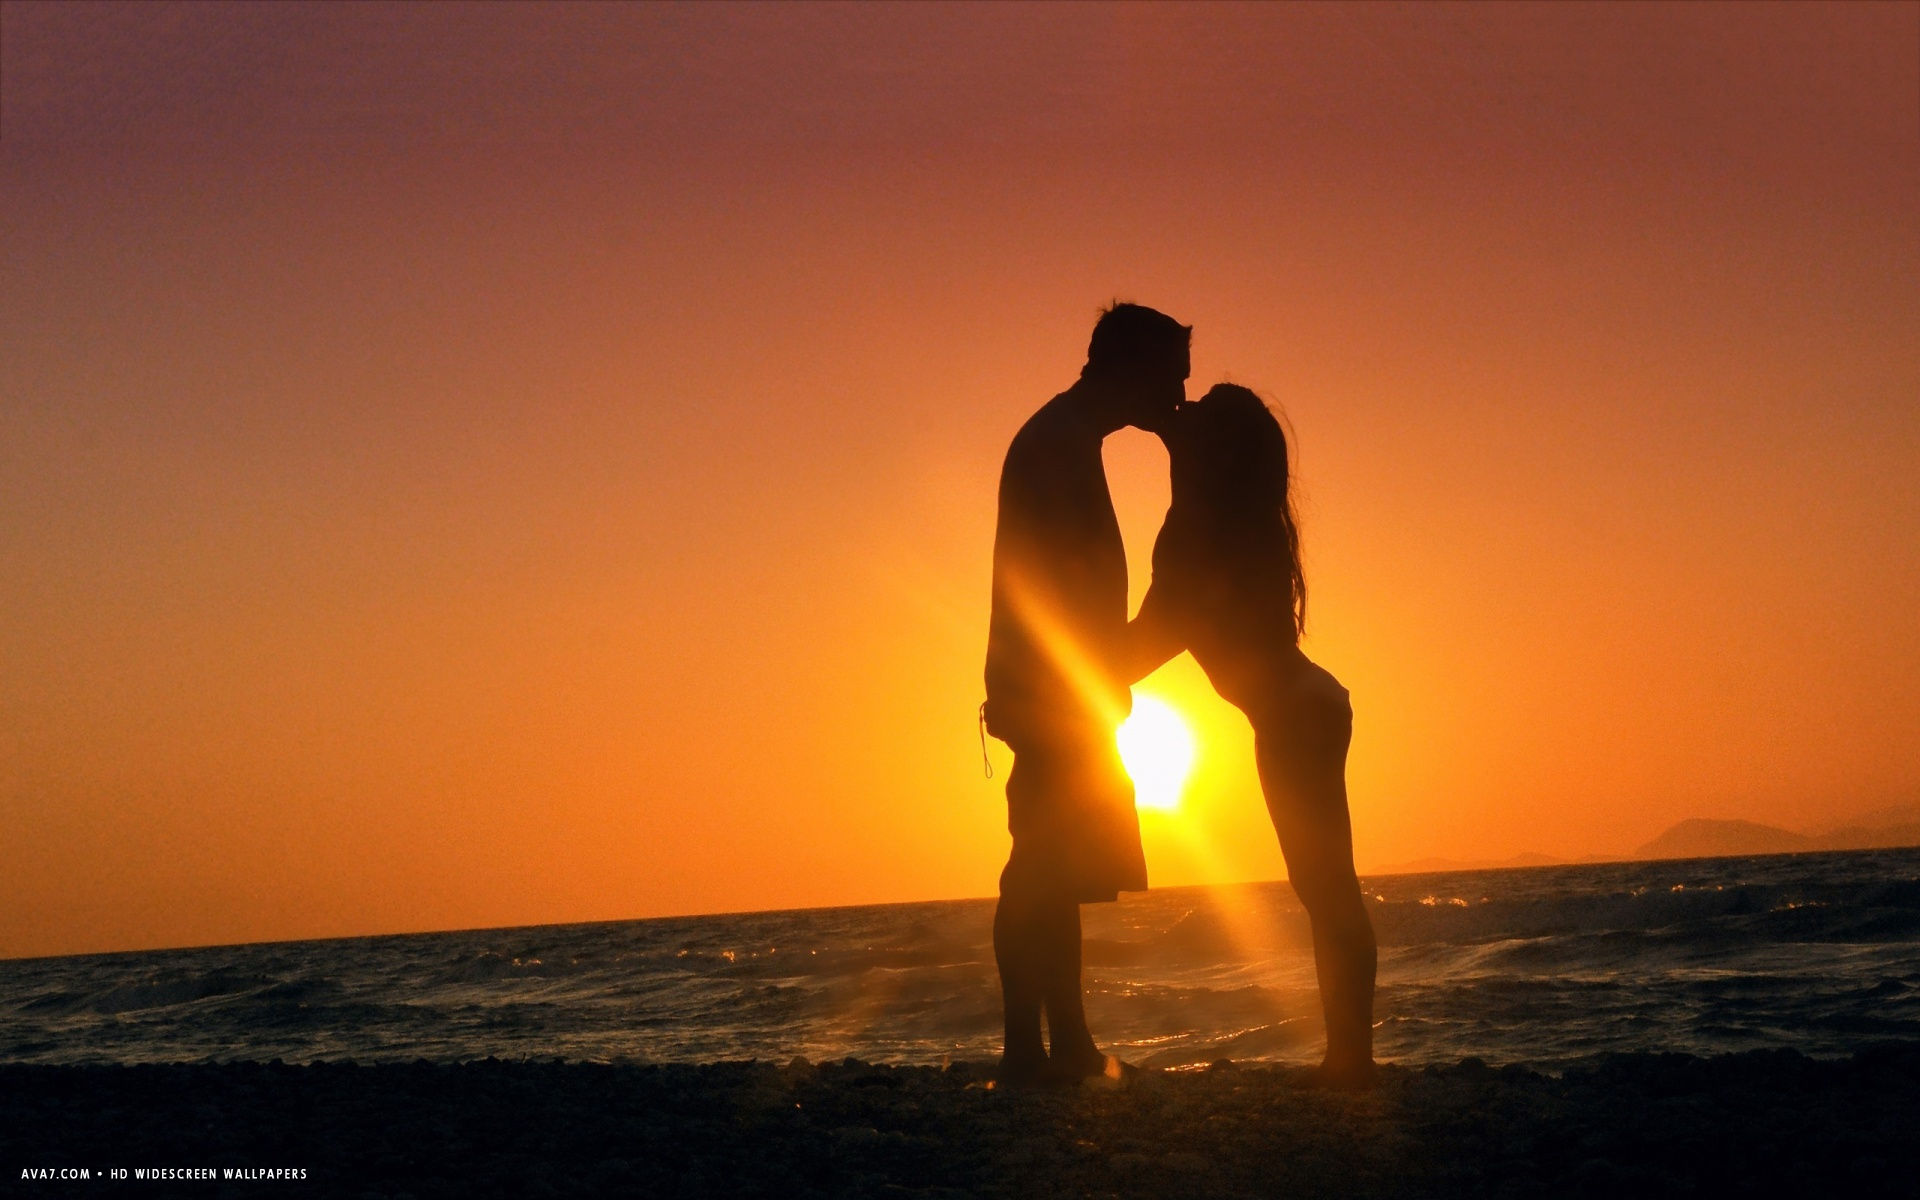 romantic kiss sunset sun sea cute couple scenery silhouette hd widescreen wallpaper